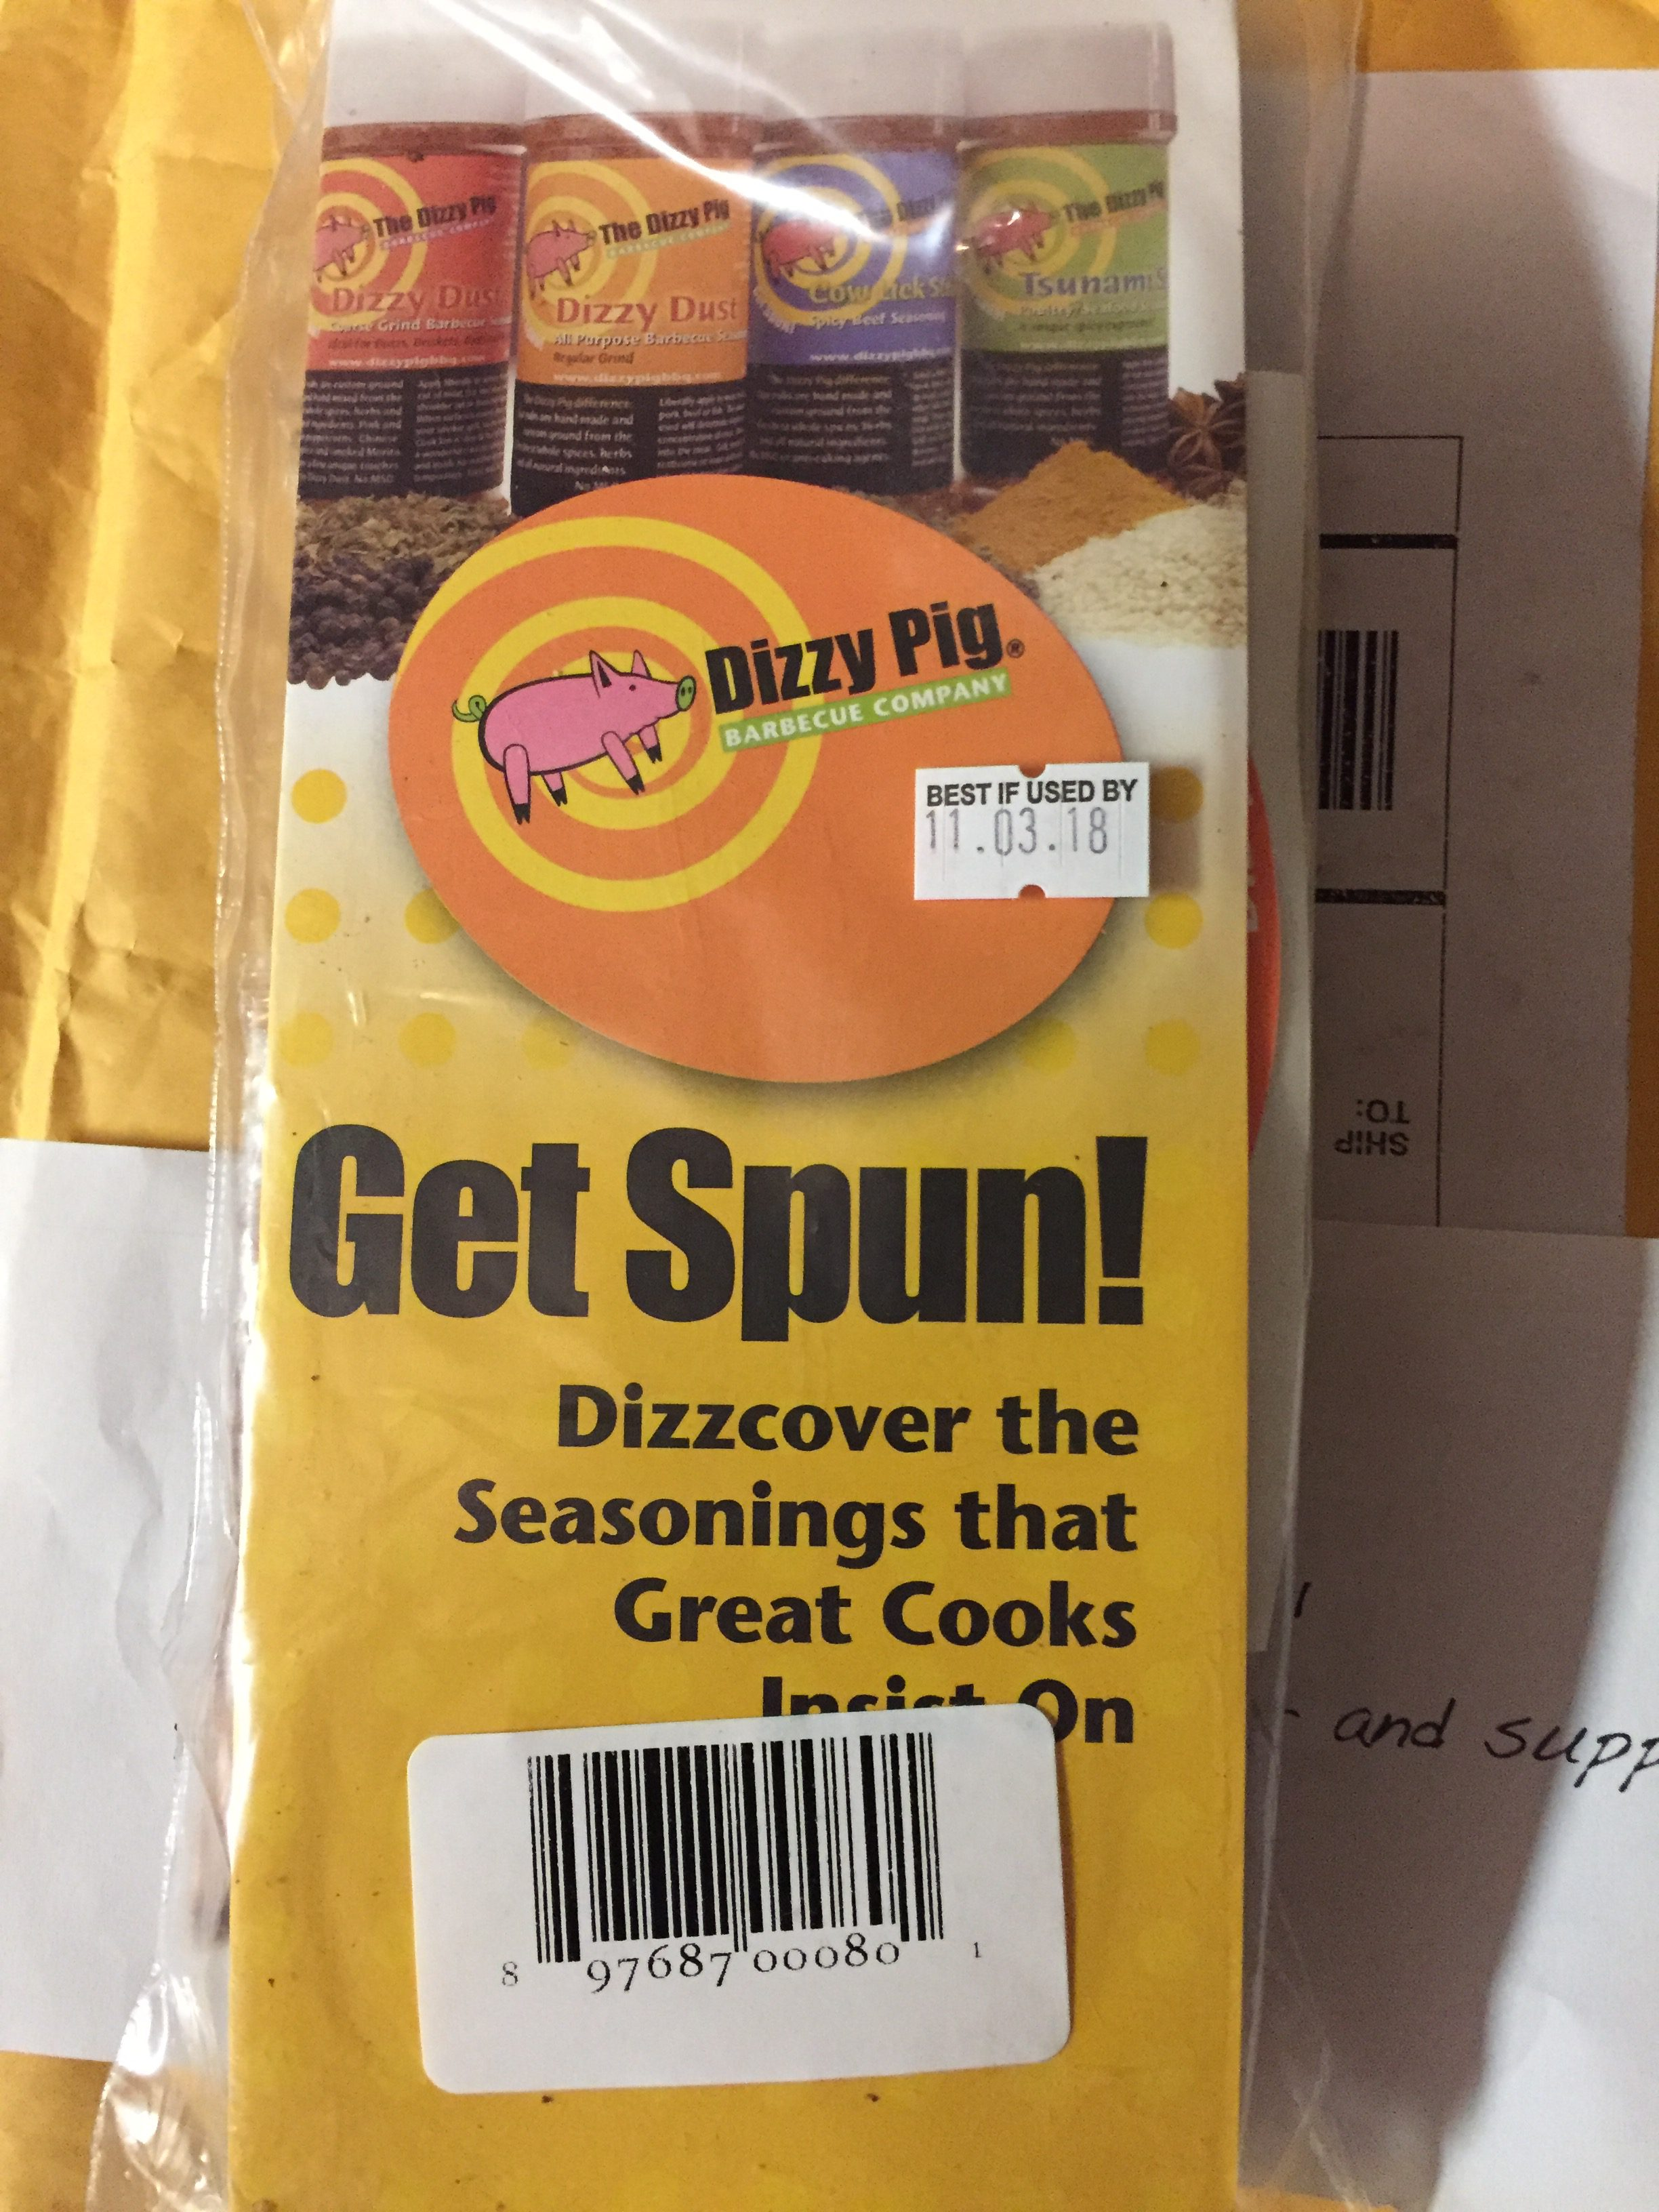 Dizzy Pig Seasoning, My package Arrived